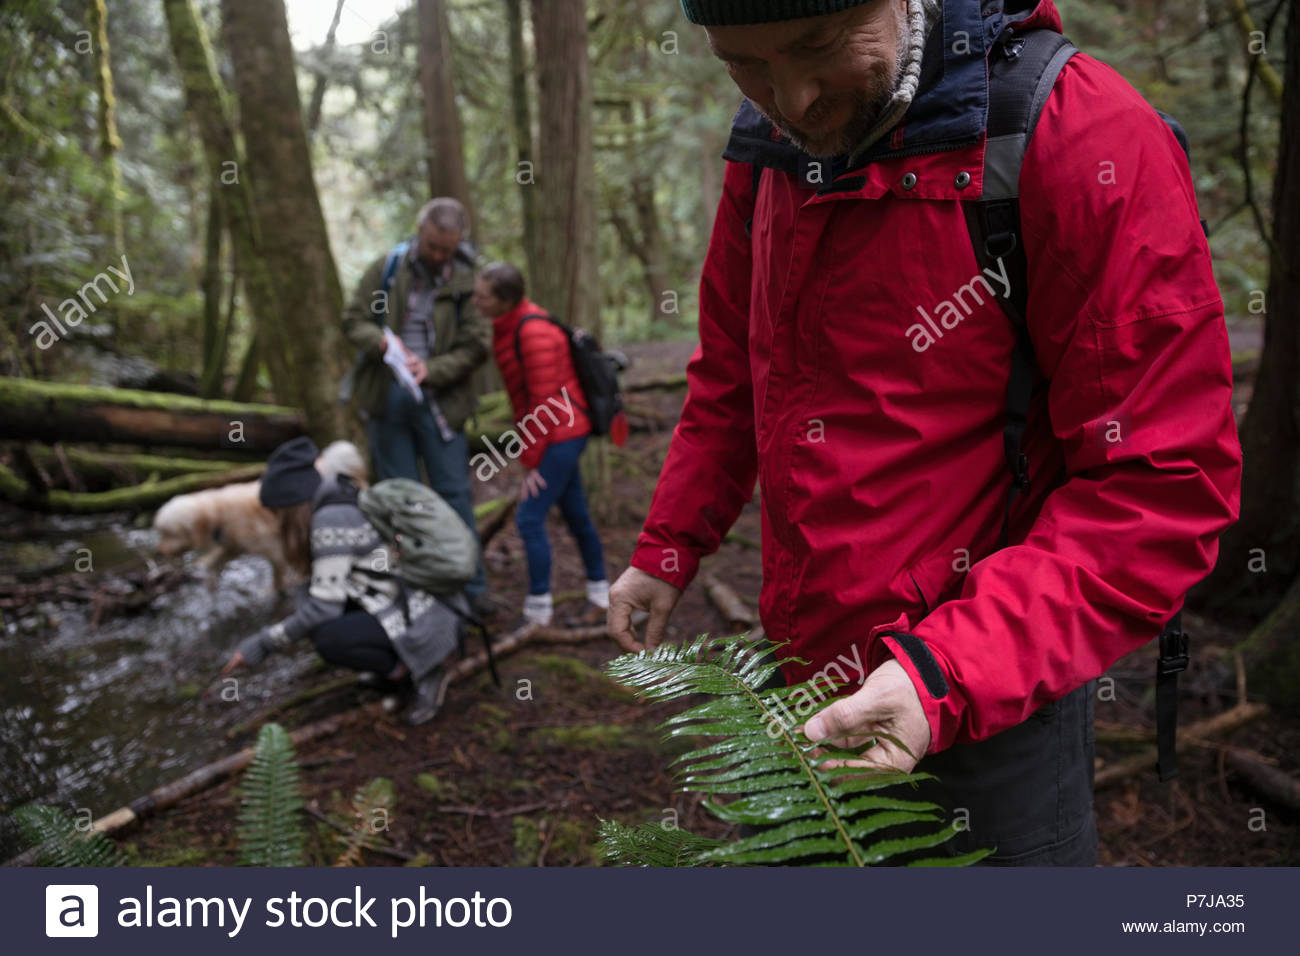 Family hiking, exploring in woods - Stock Image